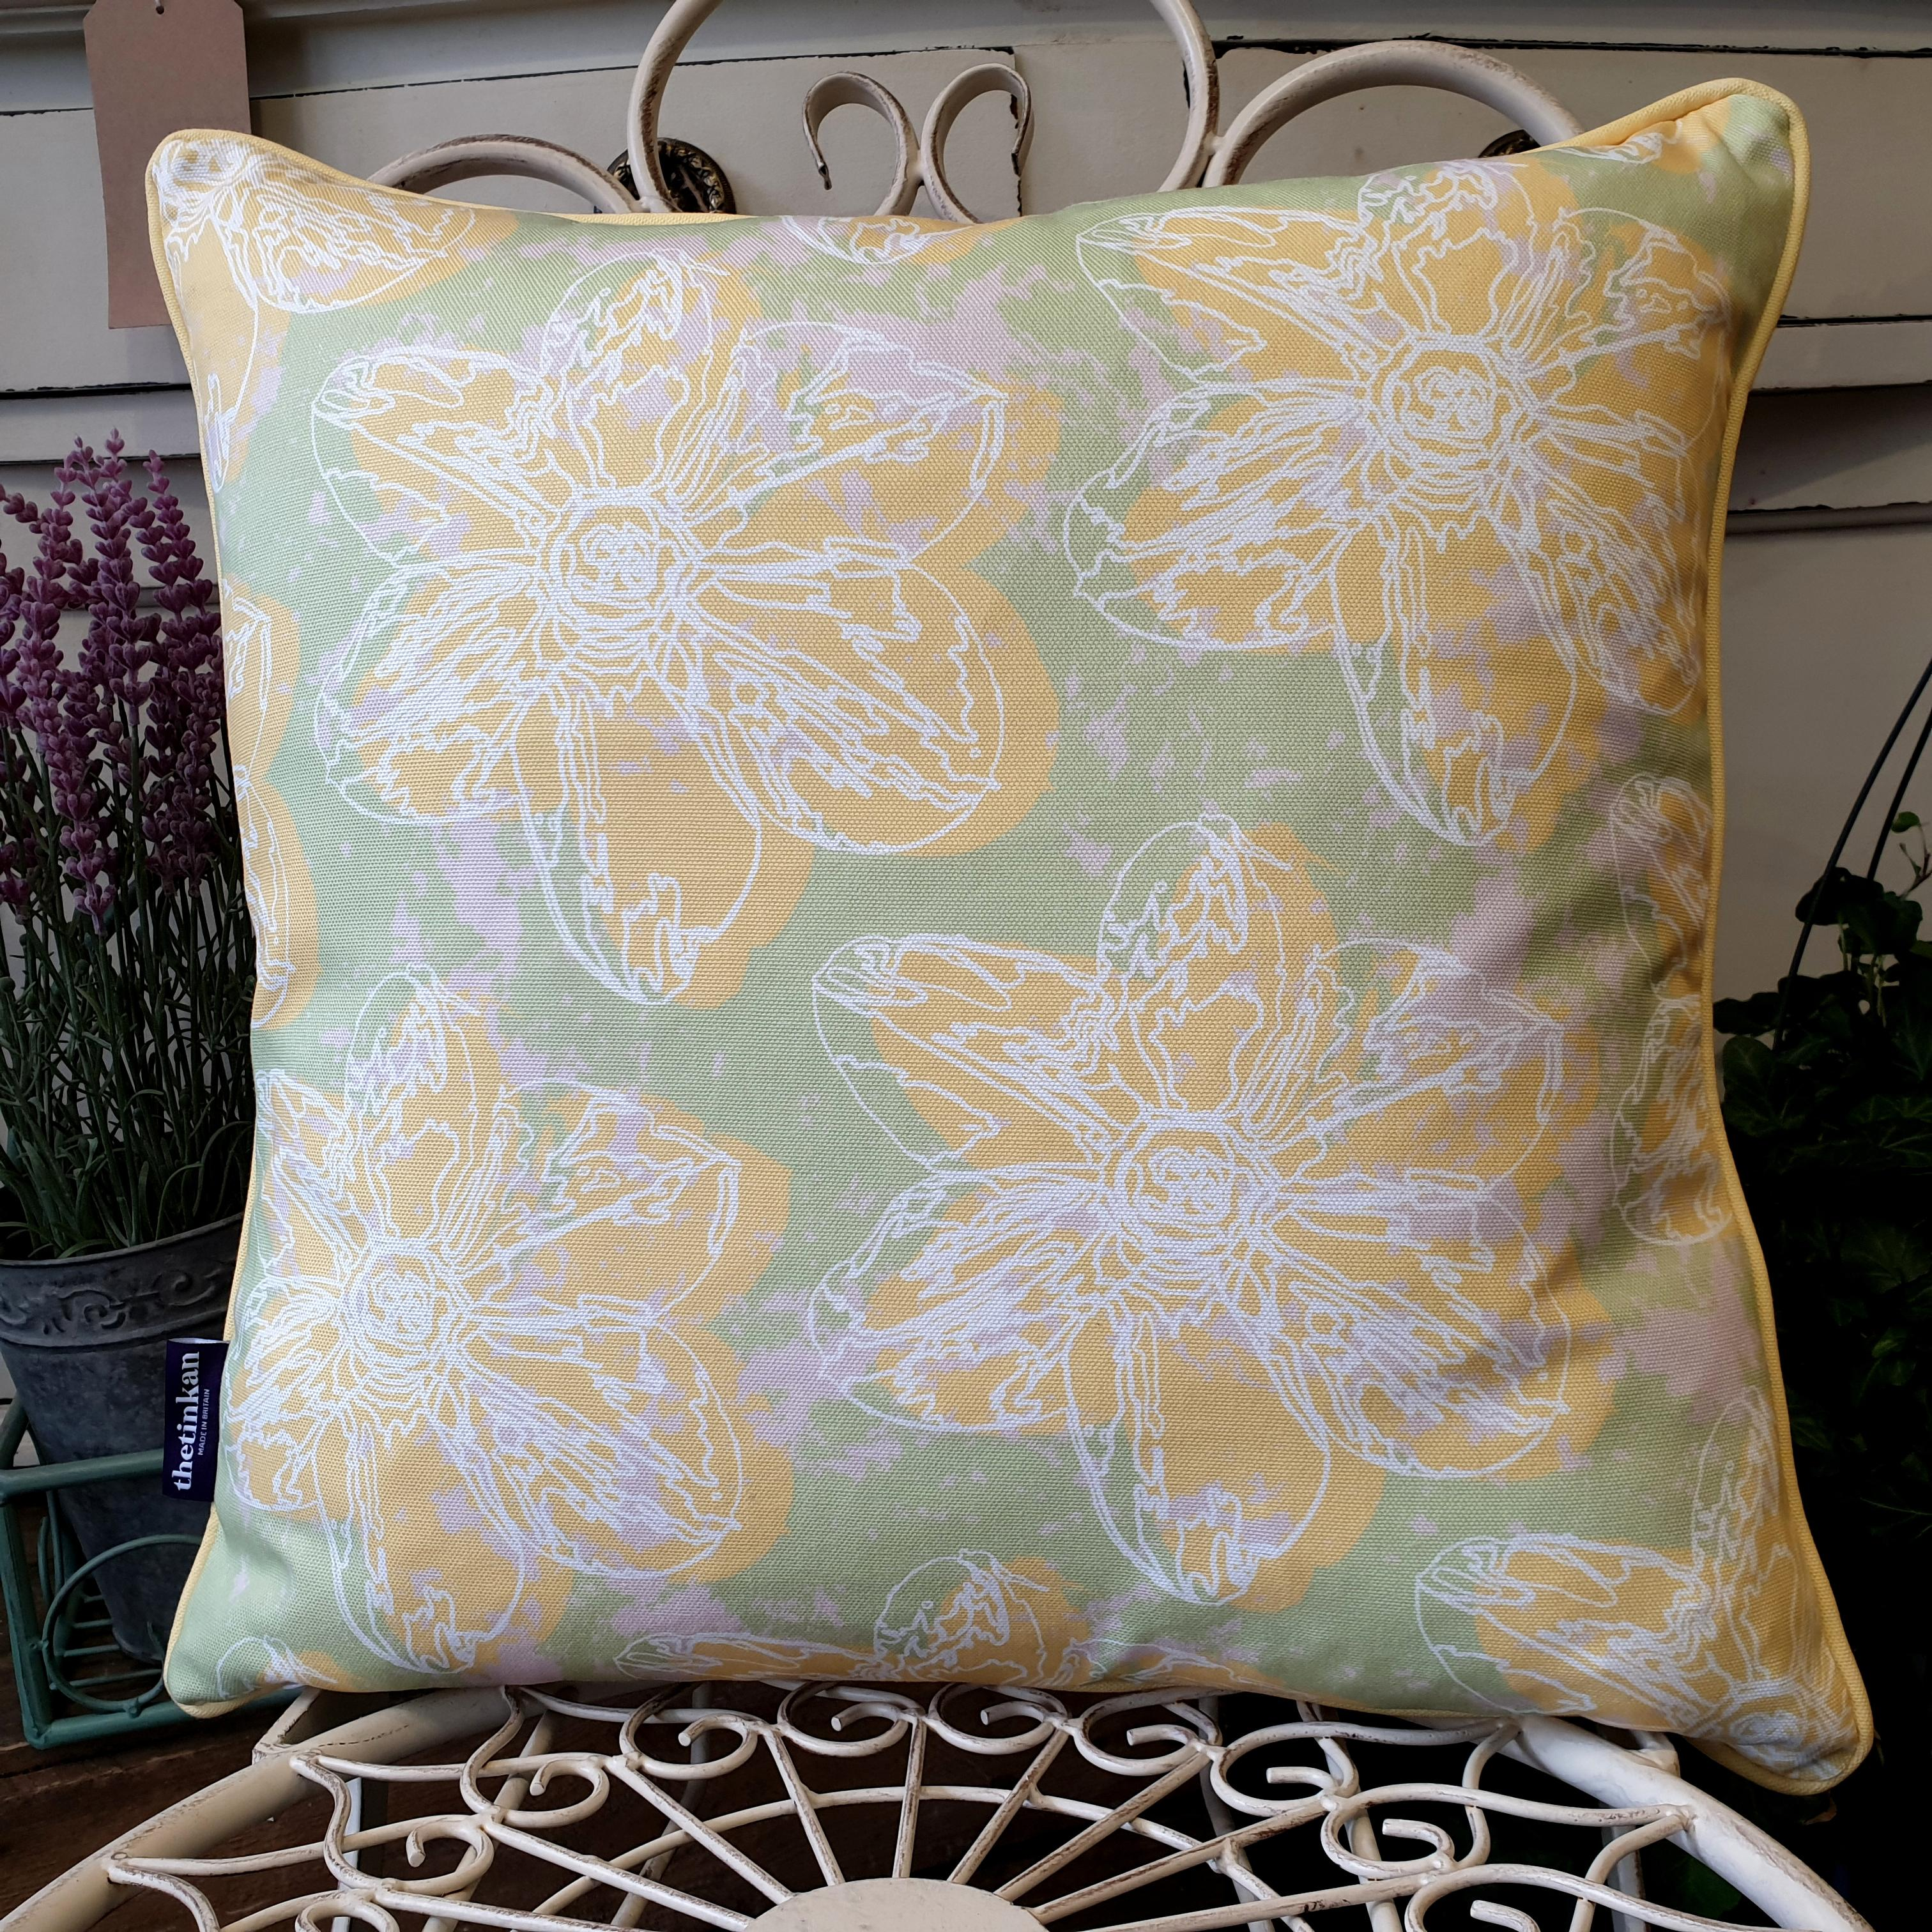 Double-sided 45cm square Flower Splash cushion designed by thetinkan. Yellow narcissus flower and yellow piping with white traced outline set within a mint green background with pale pink paint splashes. Available with an optional luxury cushion inner pad. VIEW PRODUCT >>